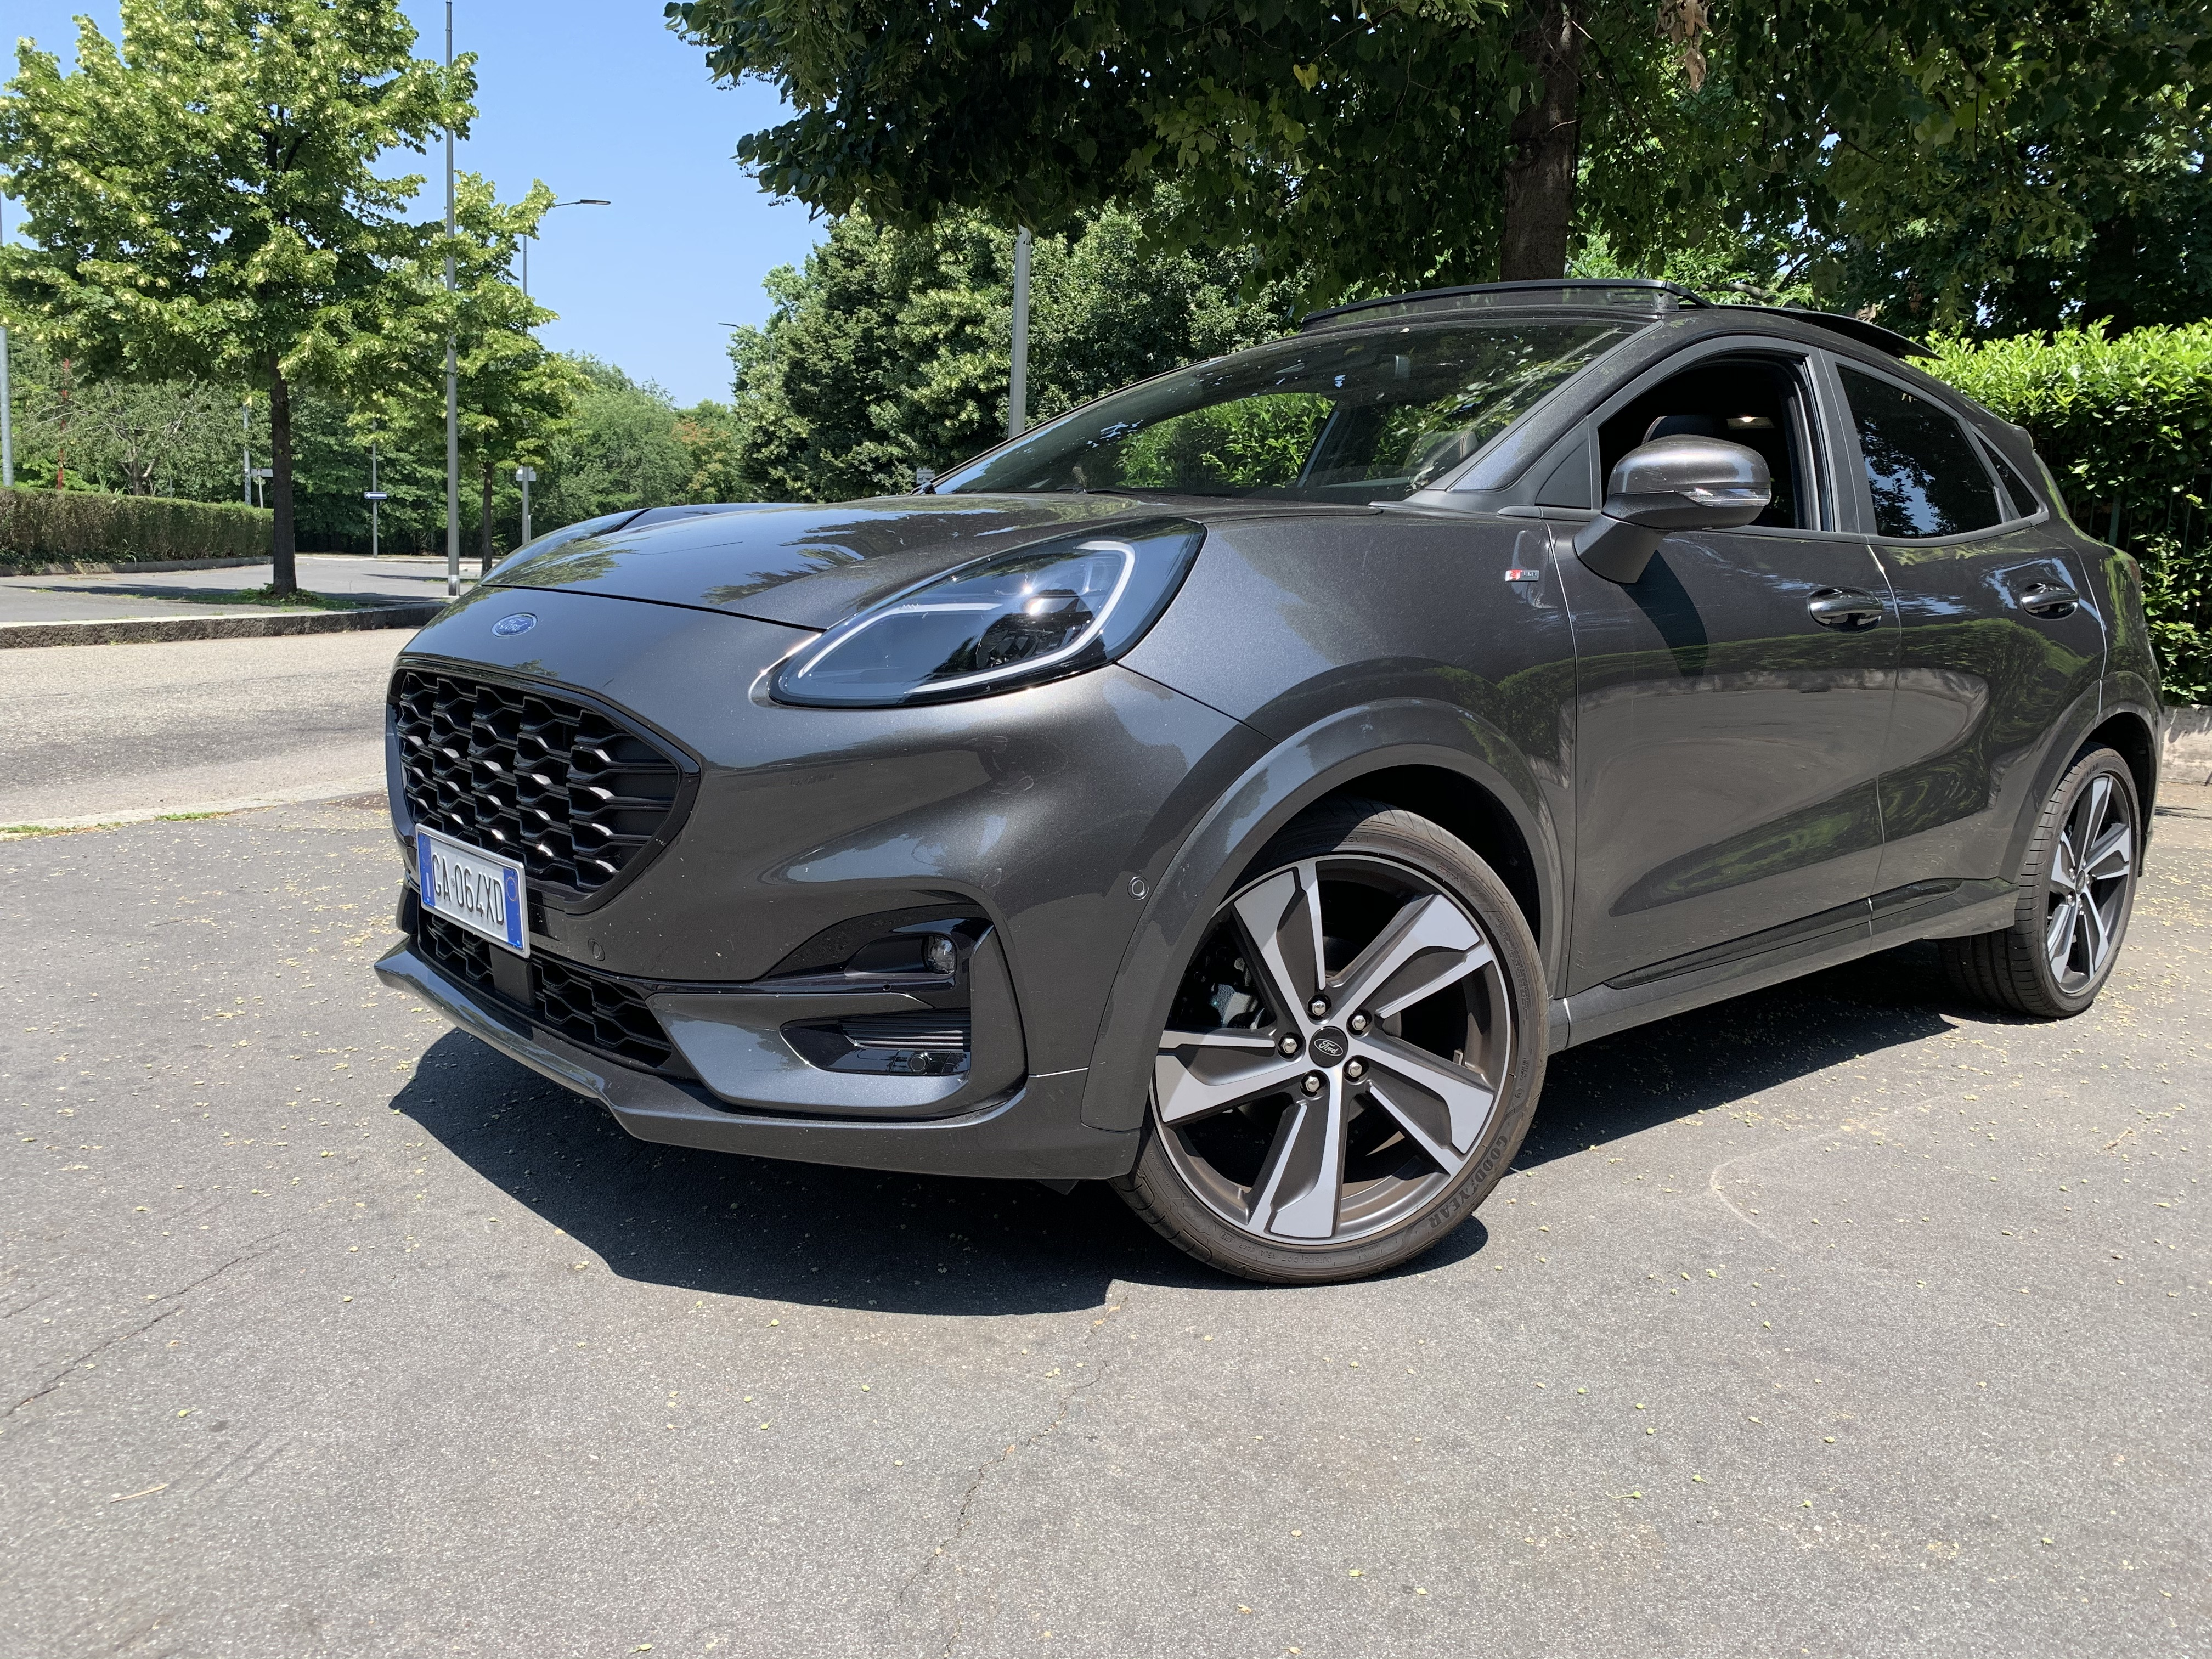 Ford Puma - ST-Line - Frontale